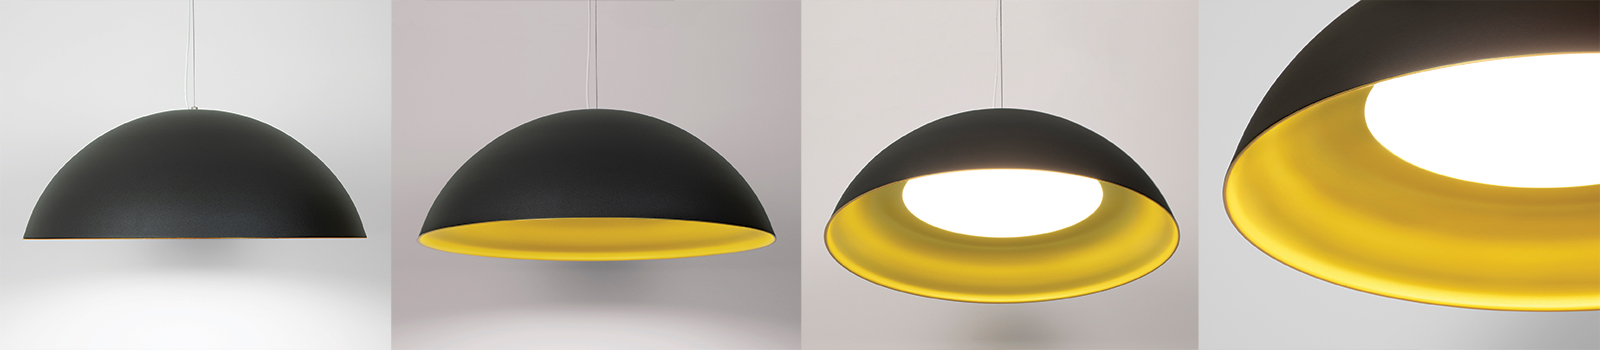 Hellen dome pendant in black and gold finishes